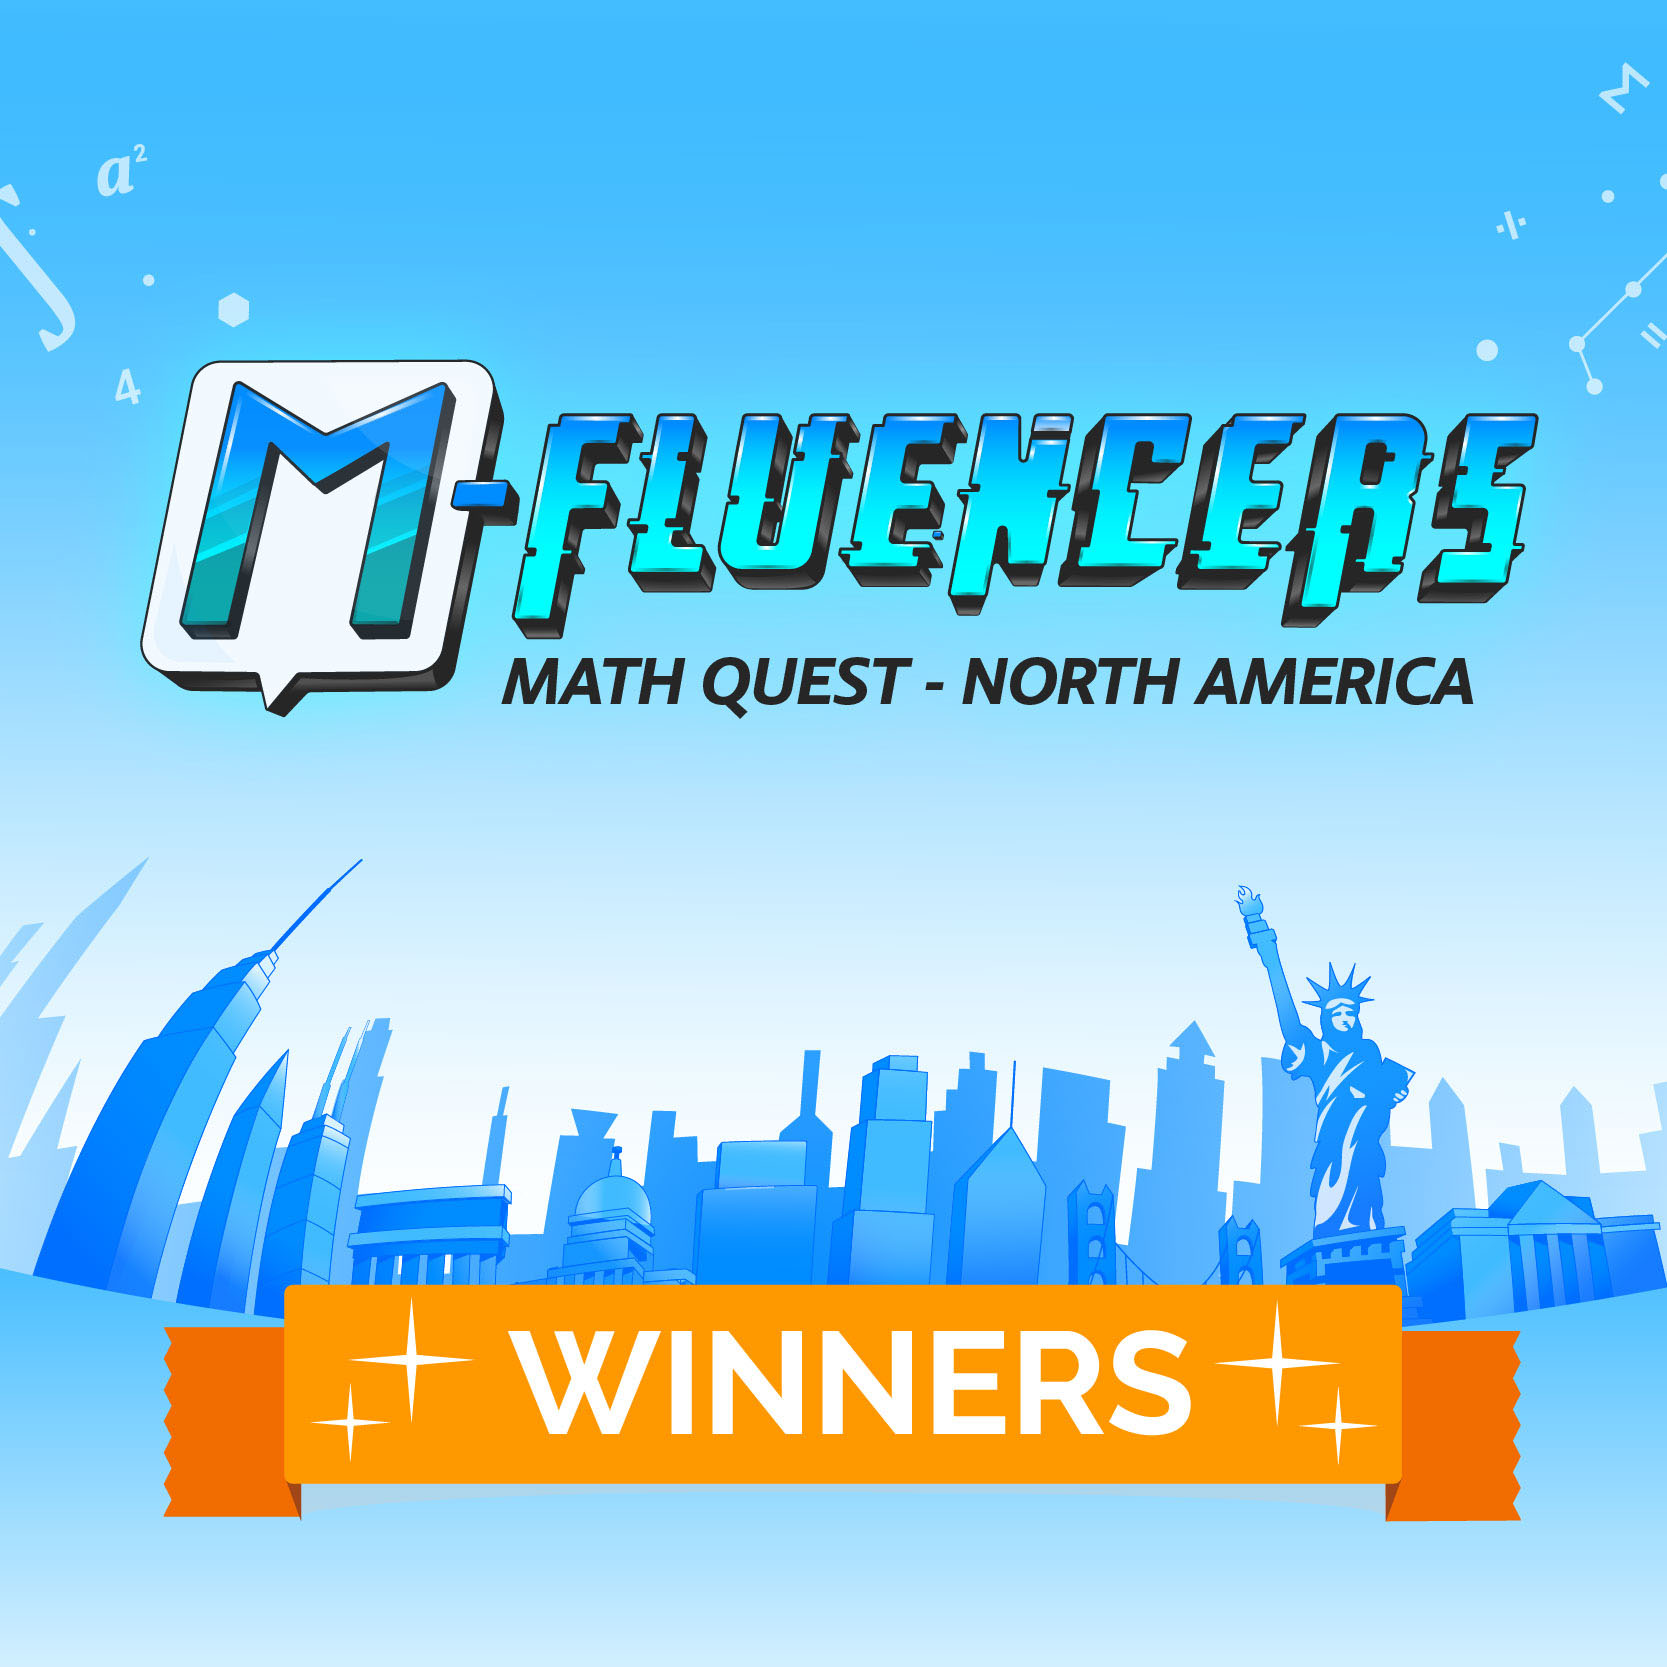 M-Fluencers North America: The Results Are In